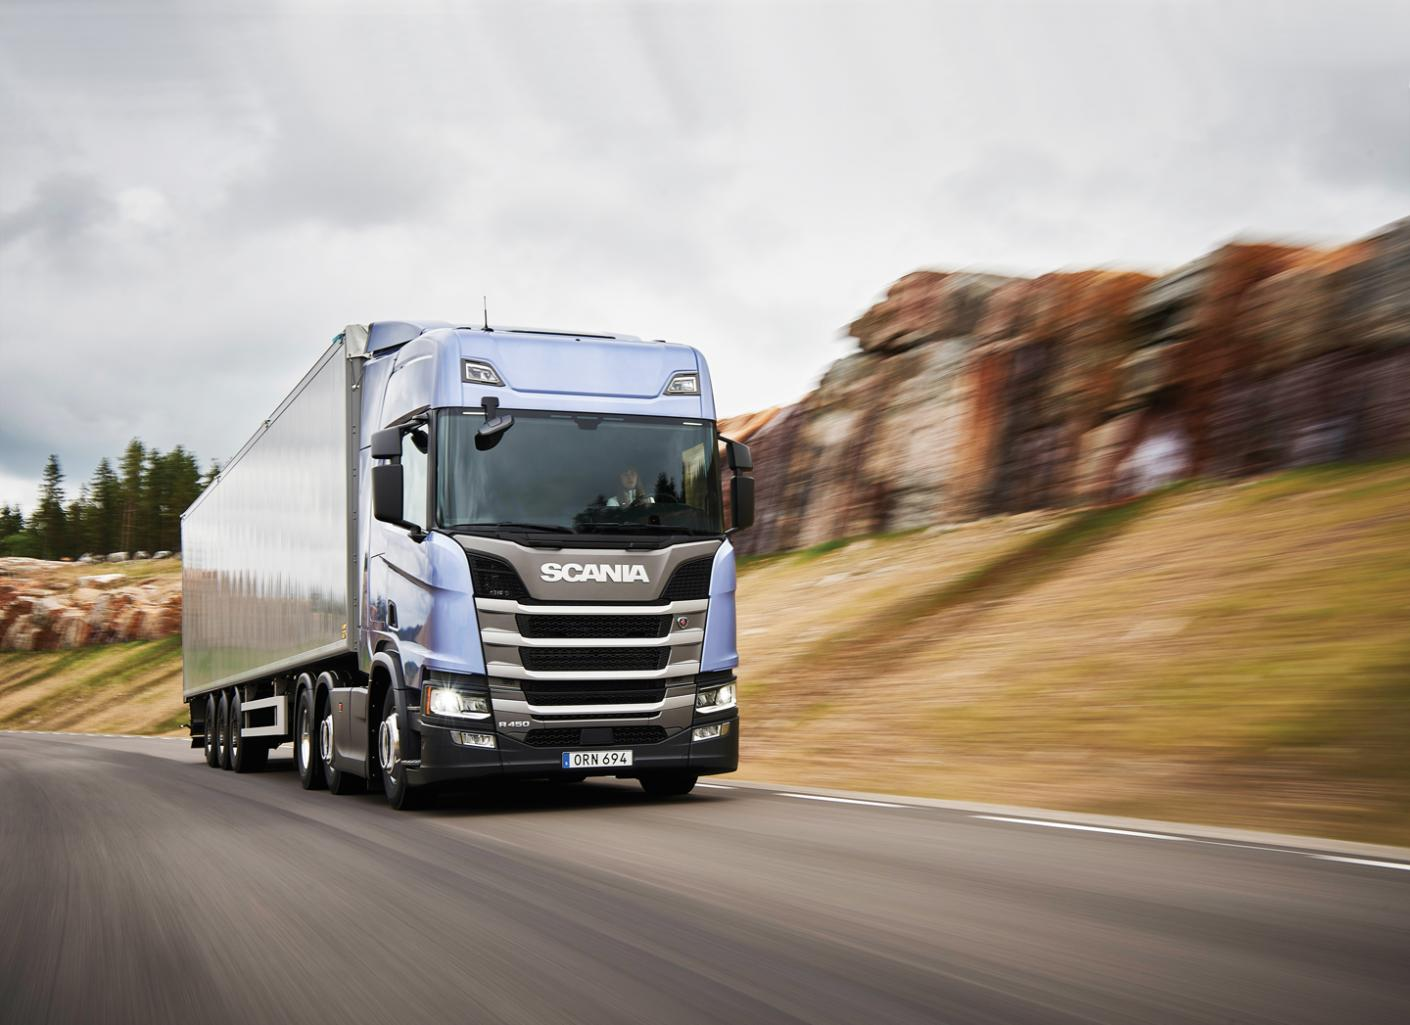 880 milions euro to Scania track company for cartel